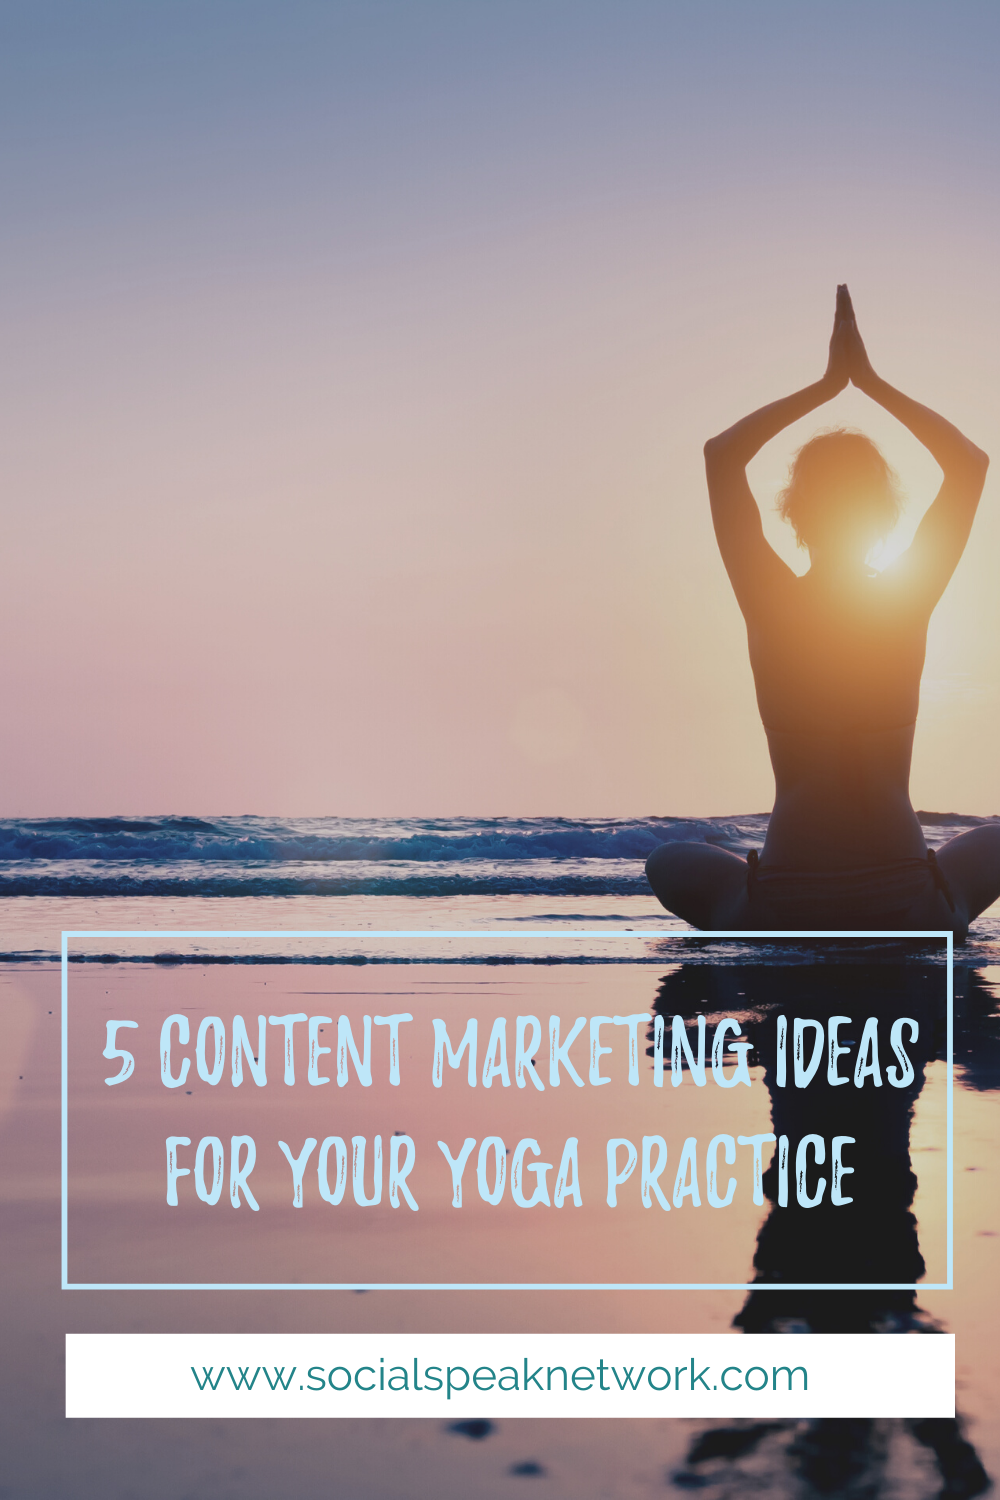 5 Content Marketing Ideas for Your Yoga Practice